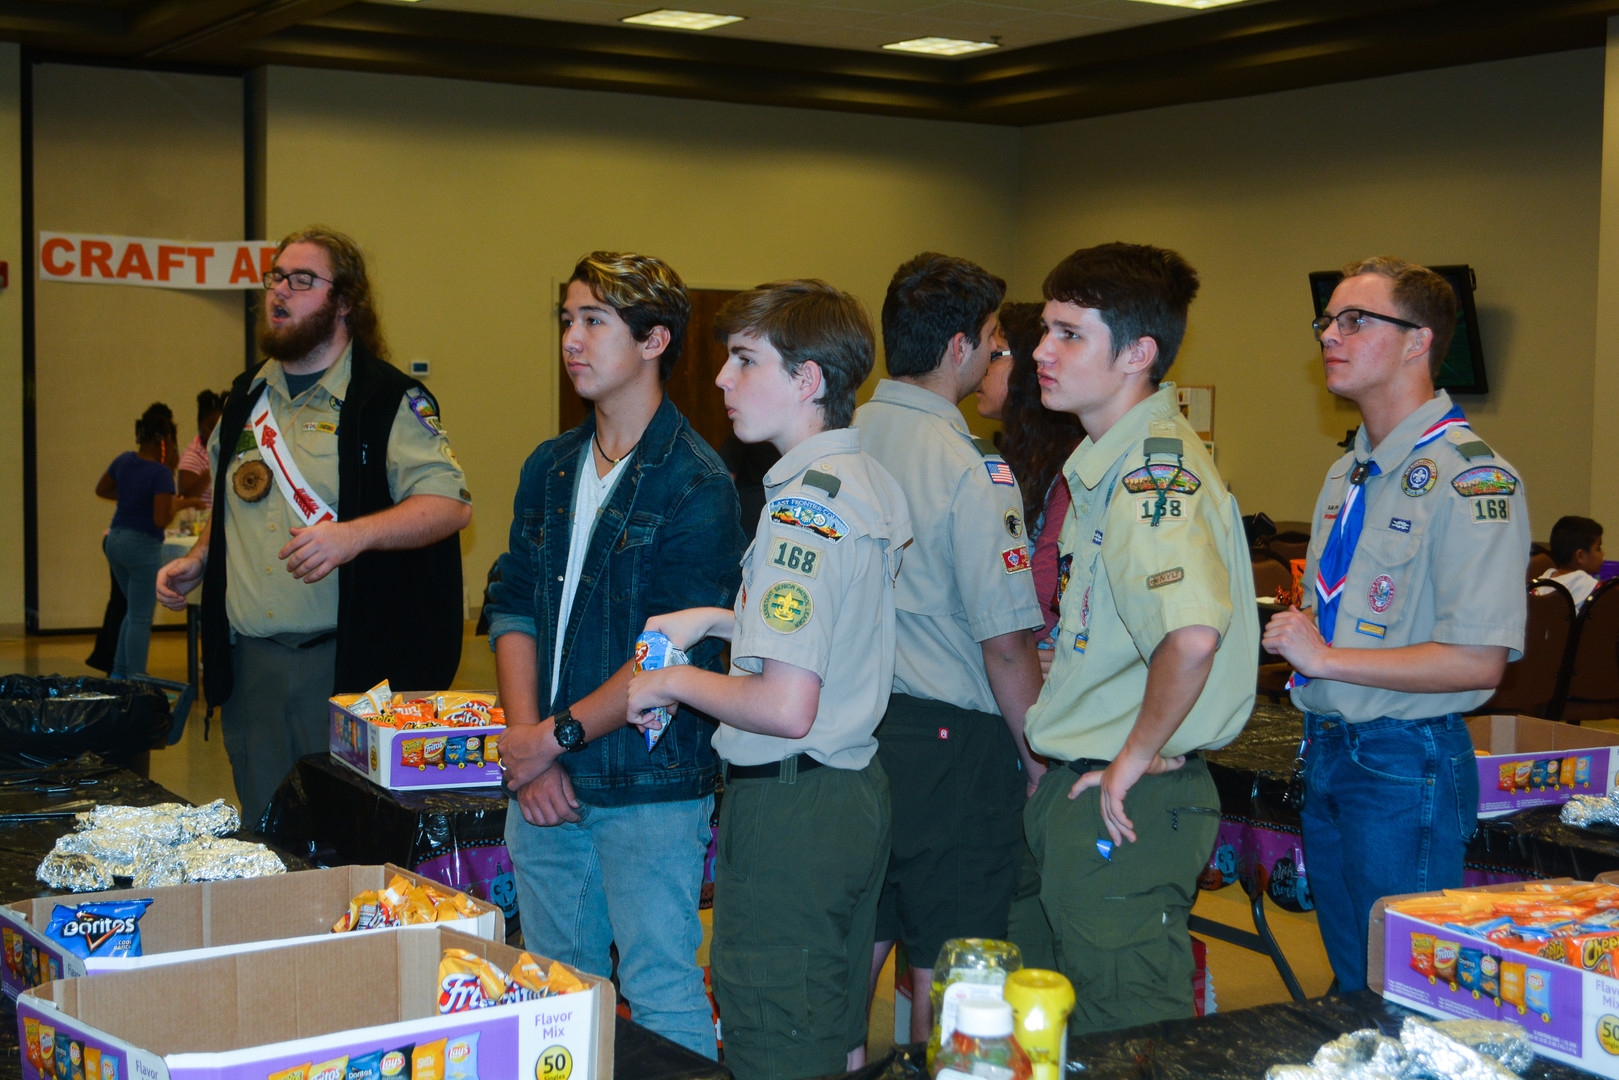 Special thanks to Troop 168!